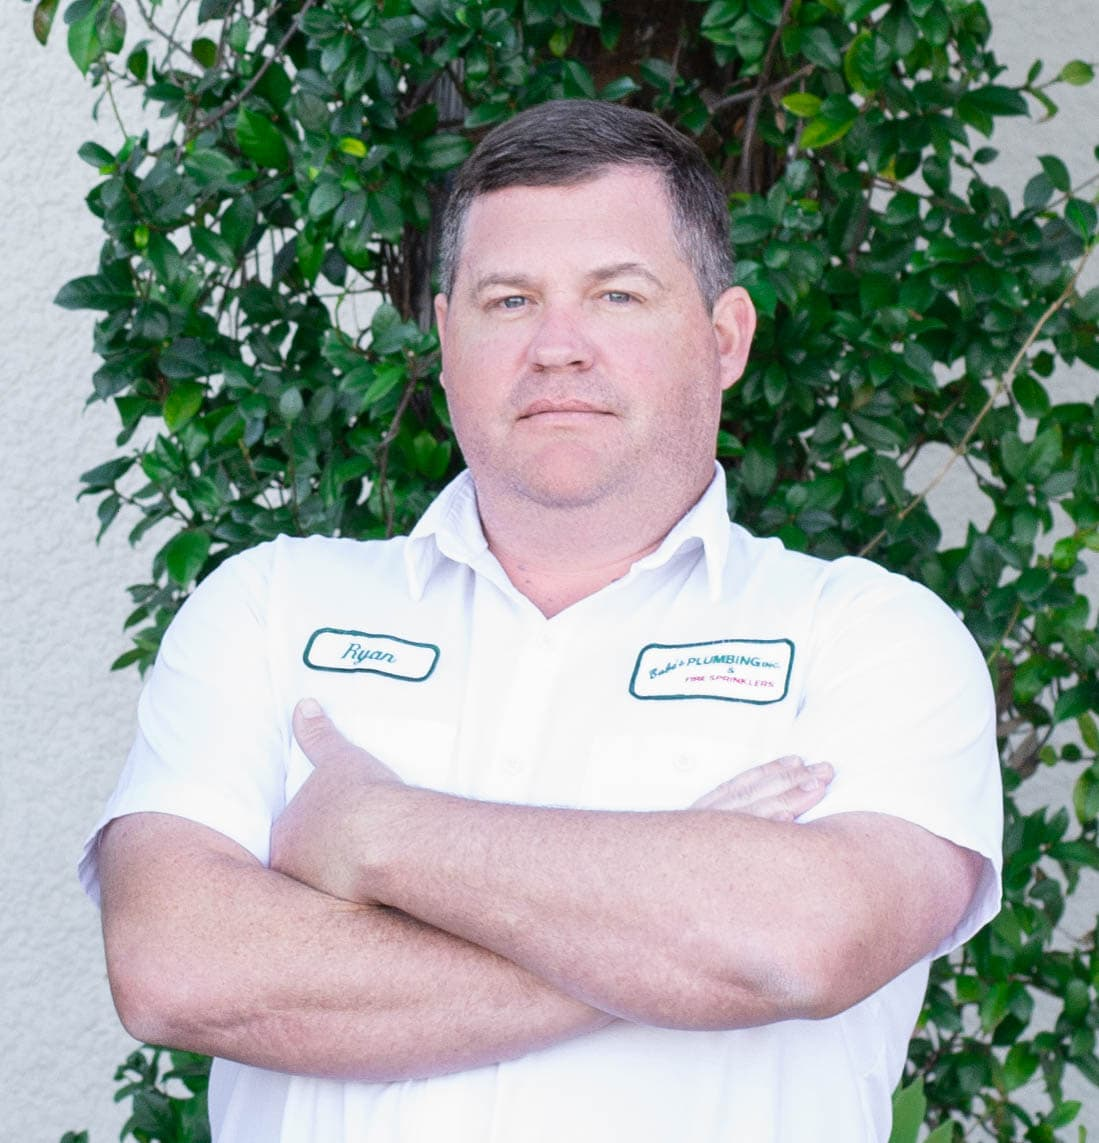 Ryan Dalton - Vice President of the Fire Sprinkler Division